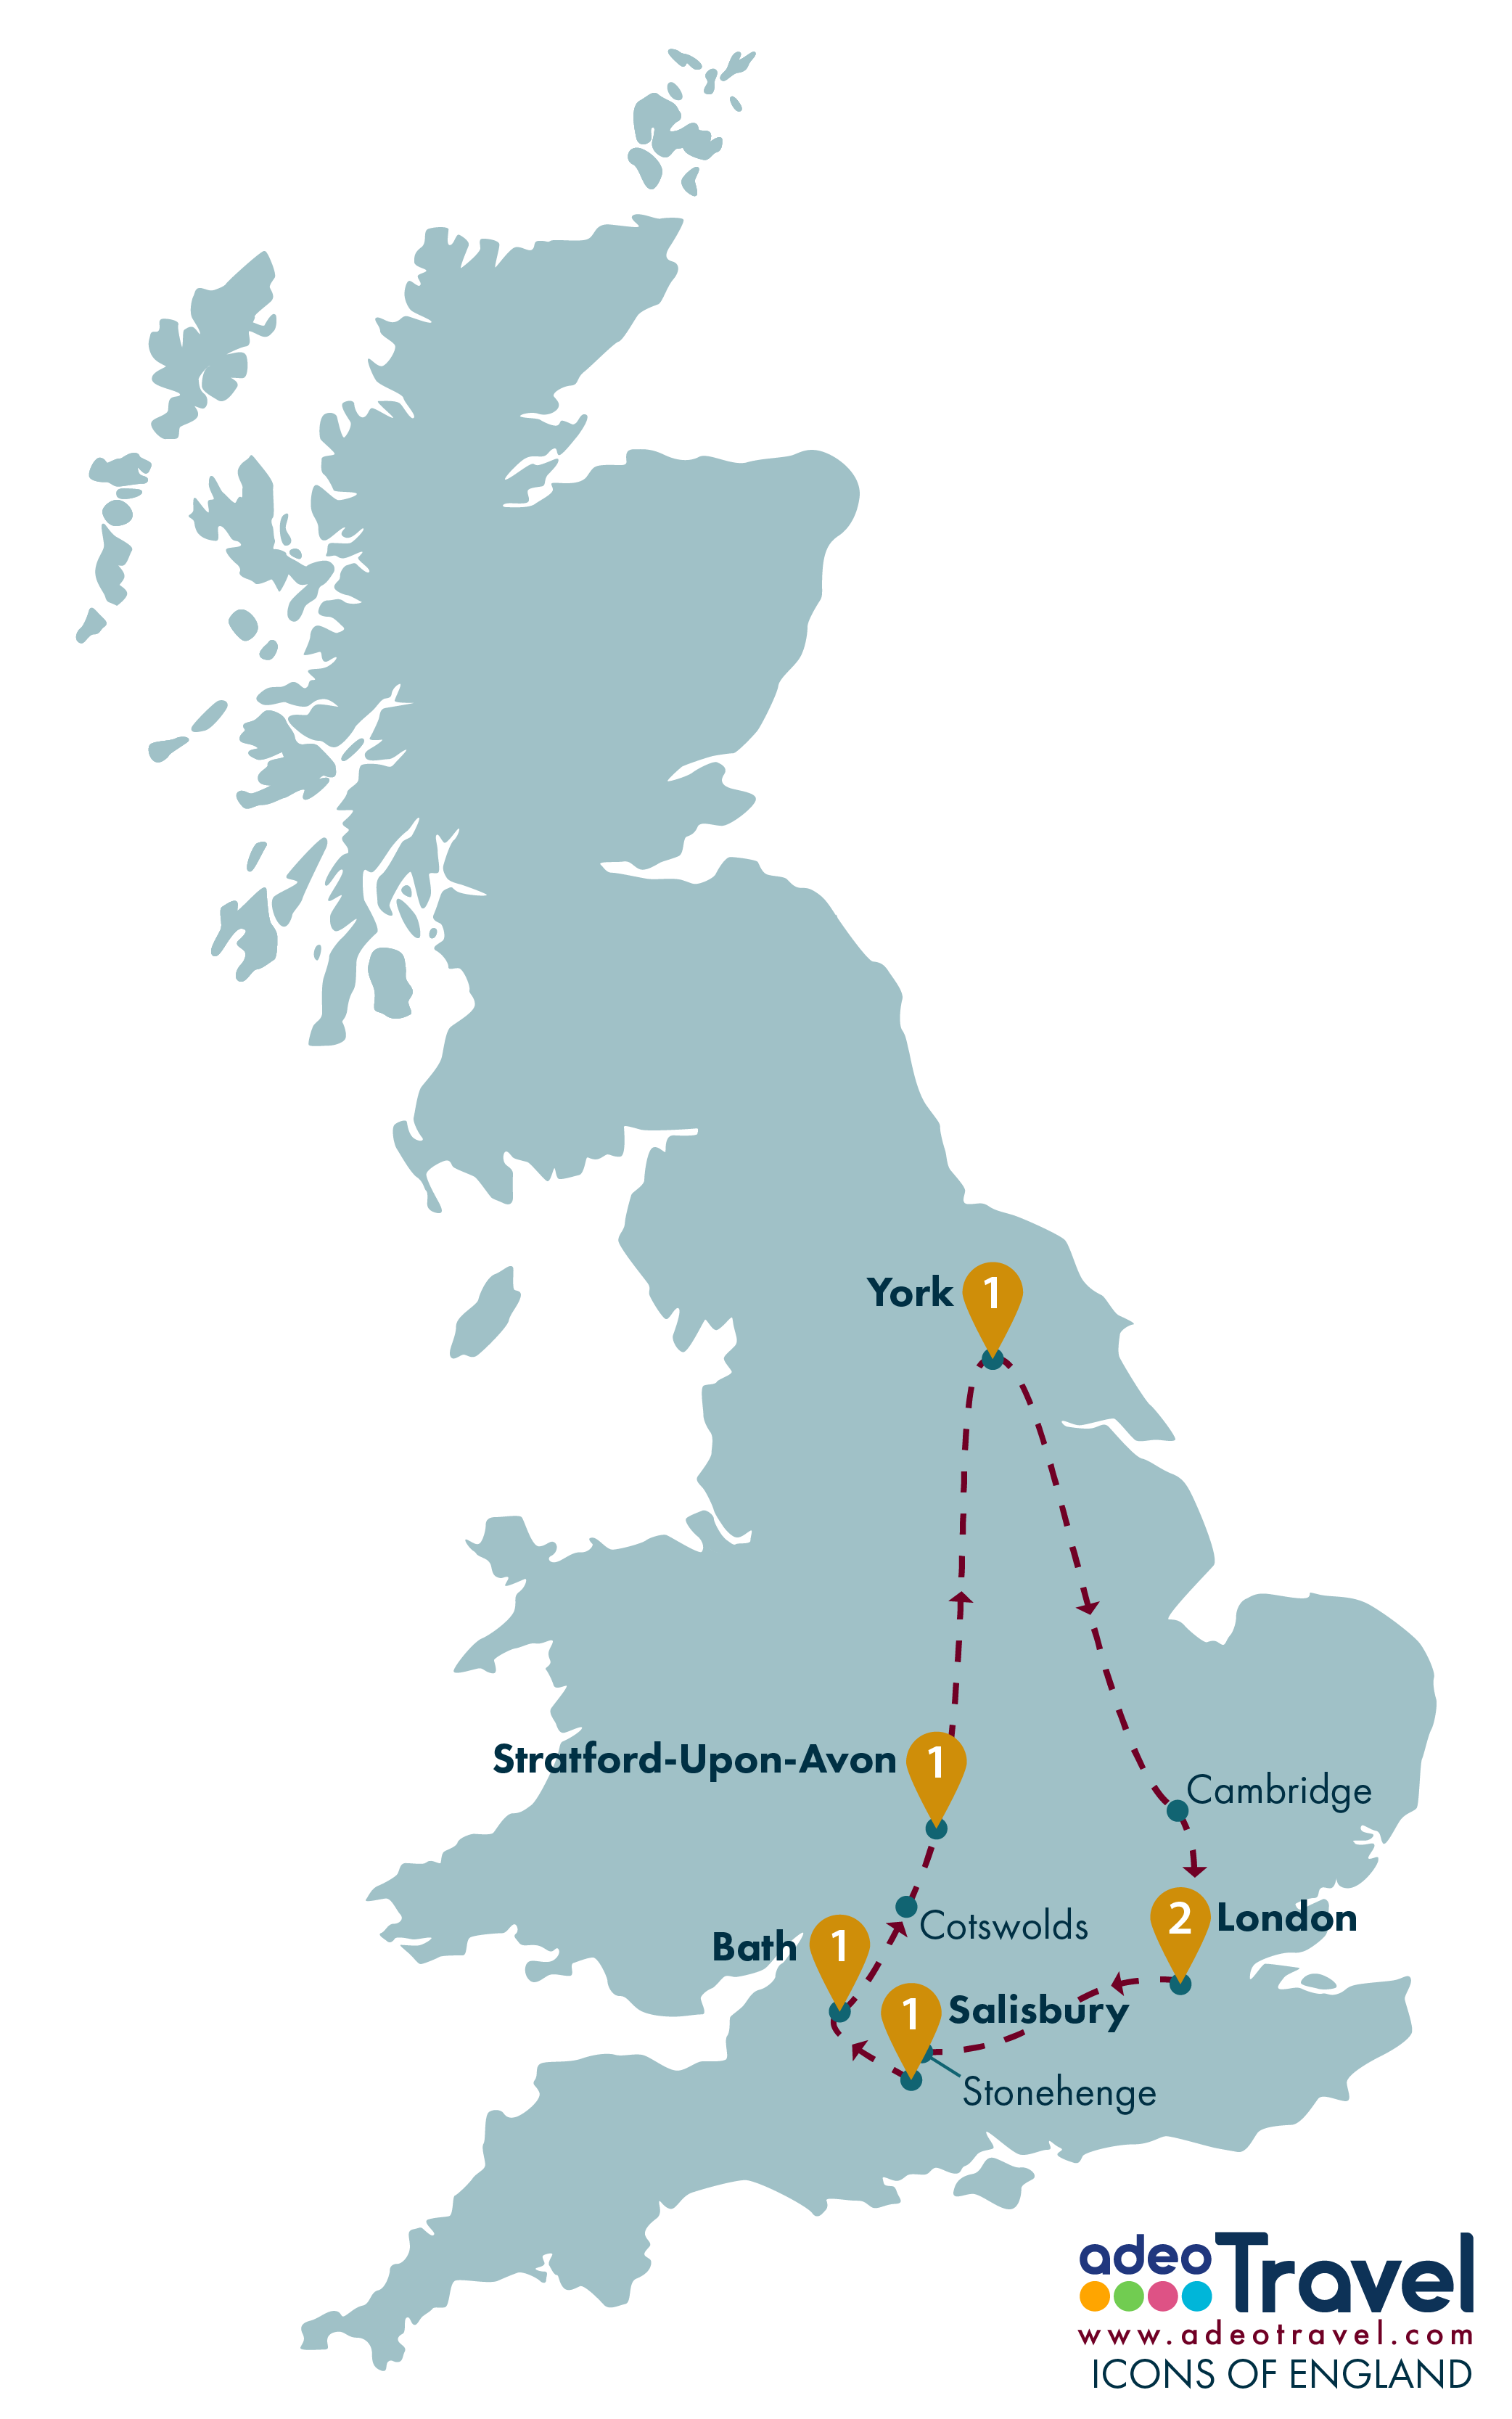 Tour Map - Icons of England